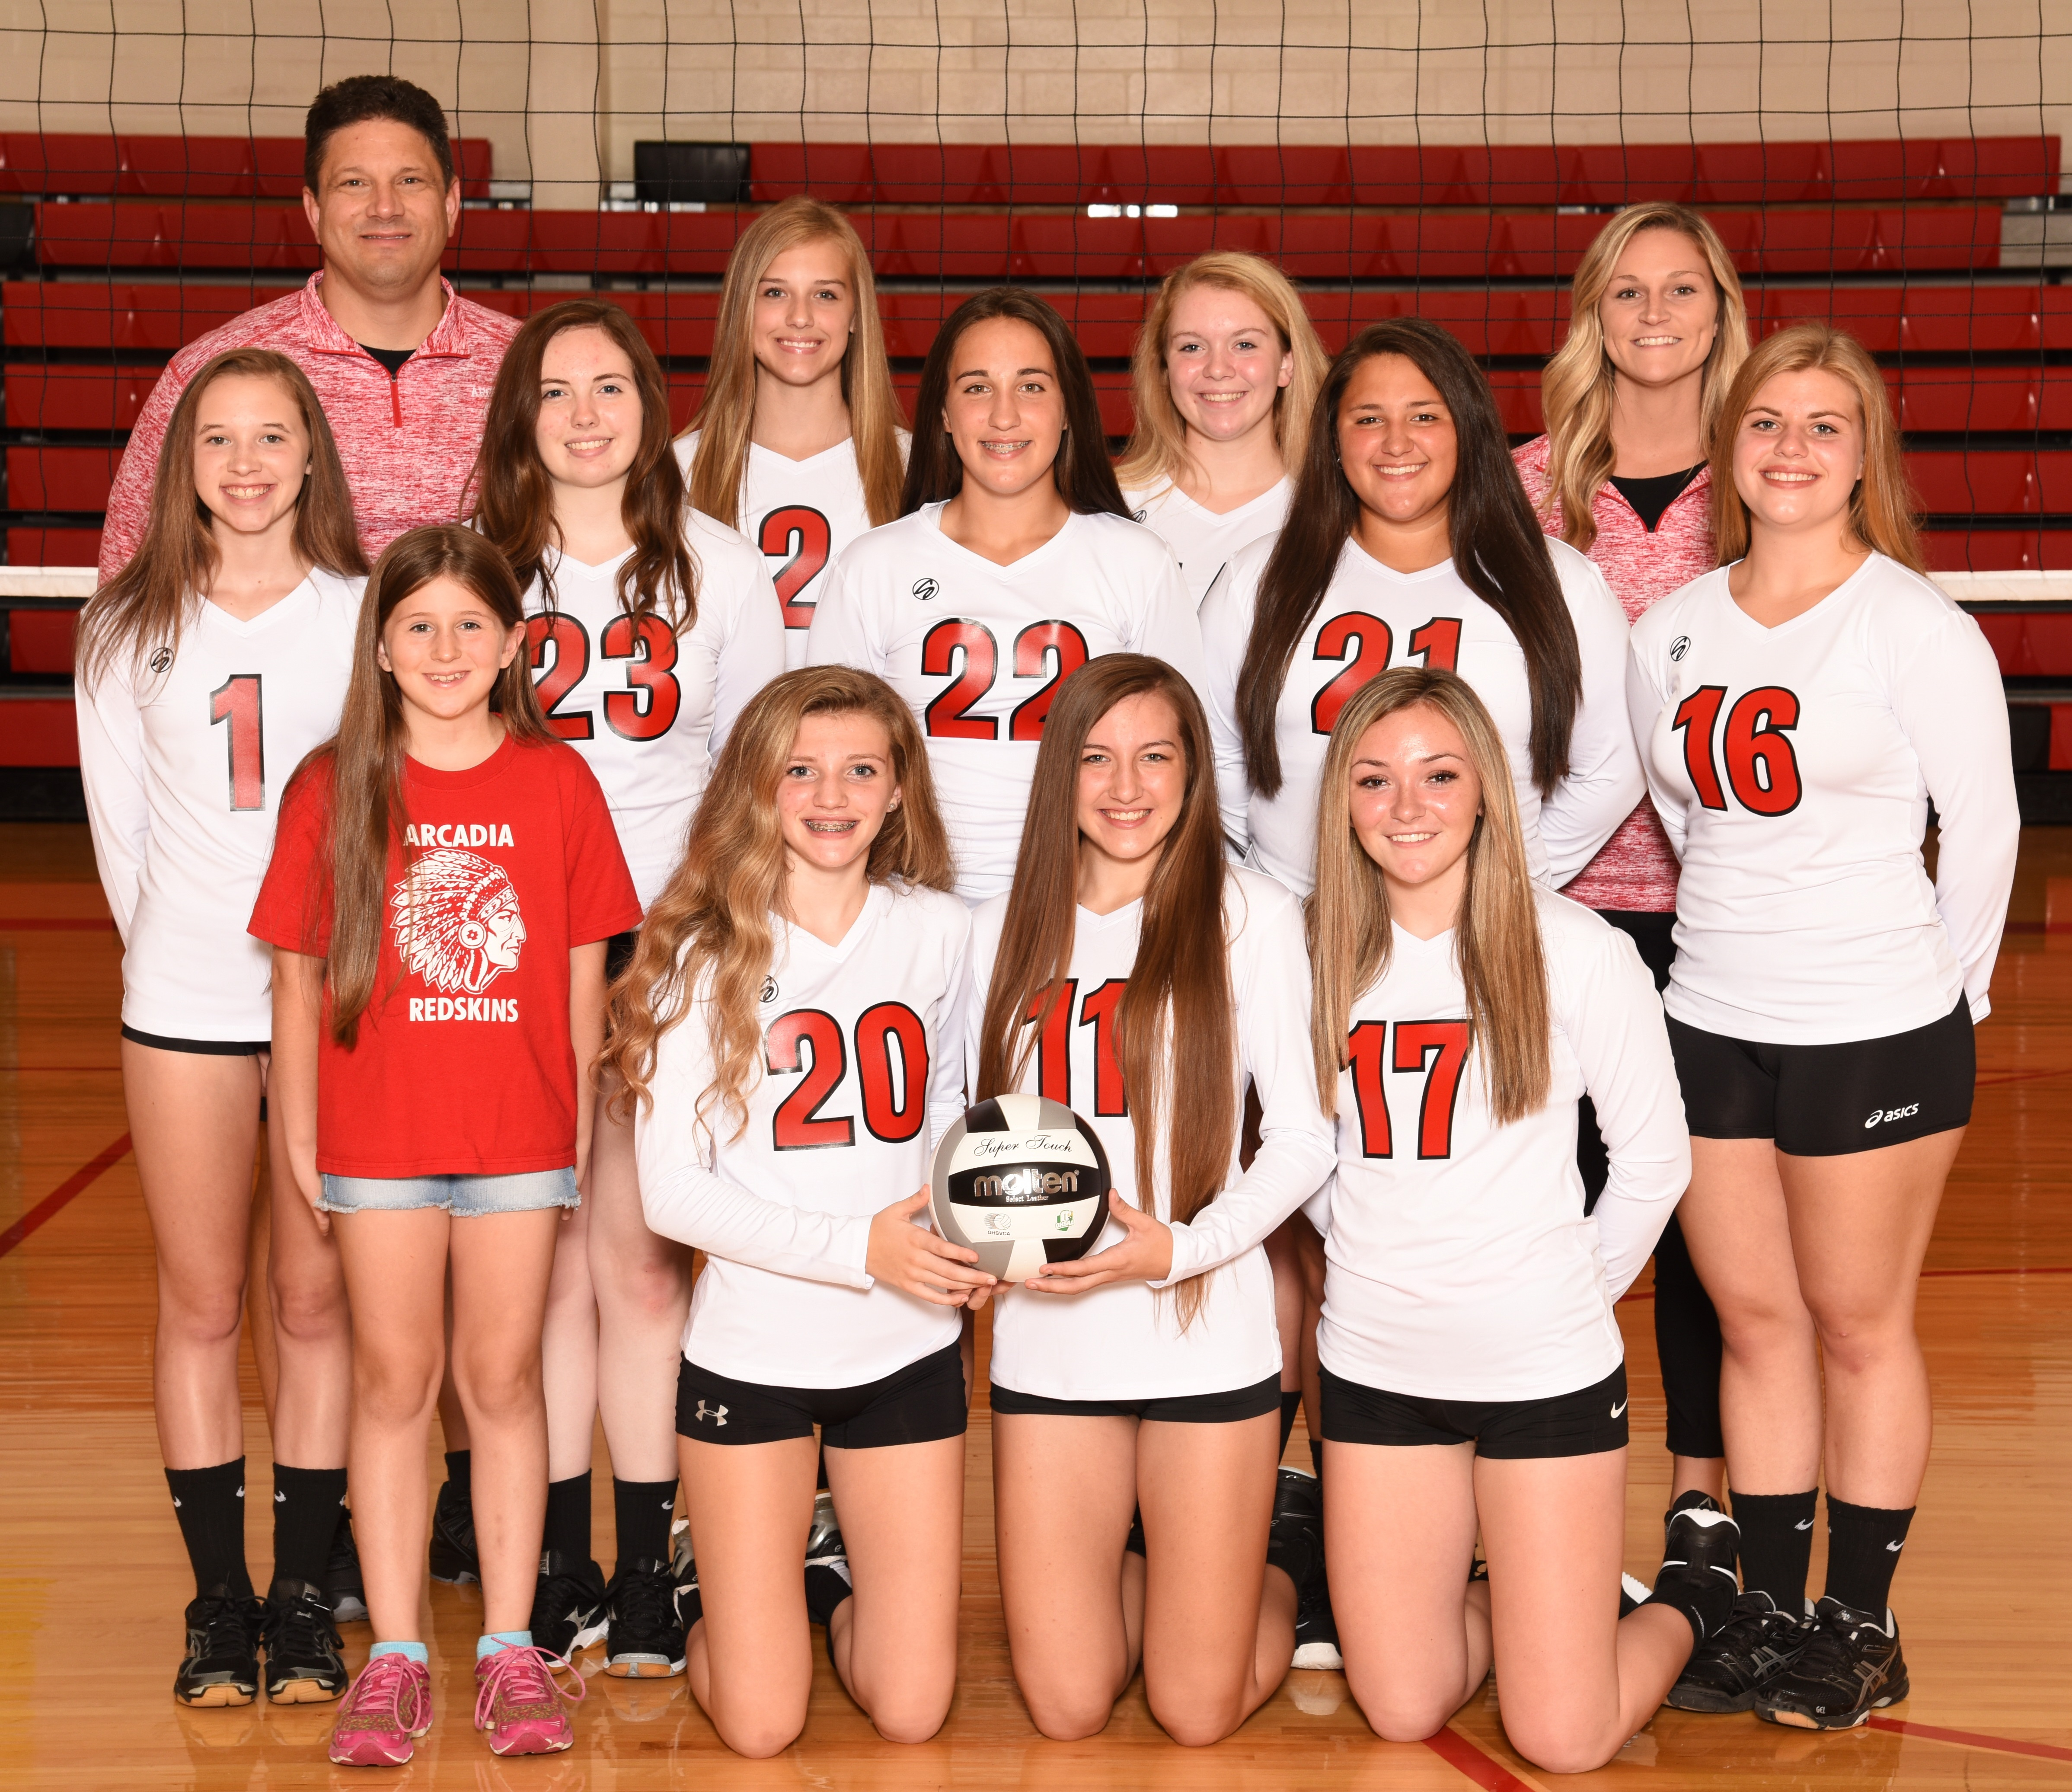 Arcadia Redskins 2018 JV Volleyball Team